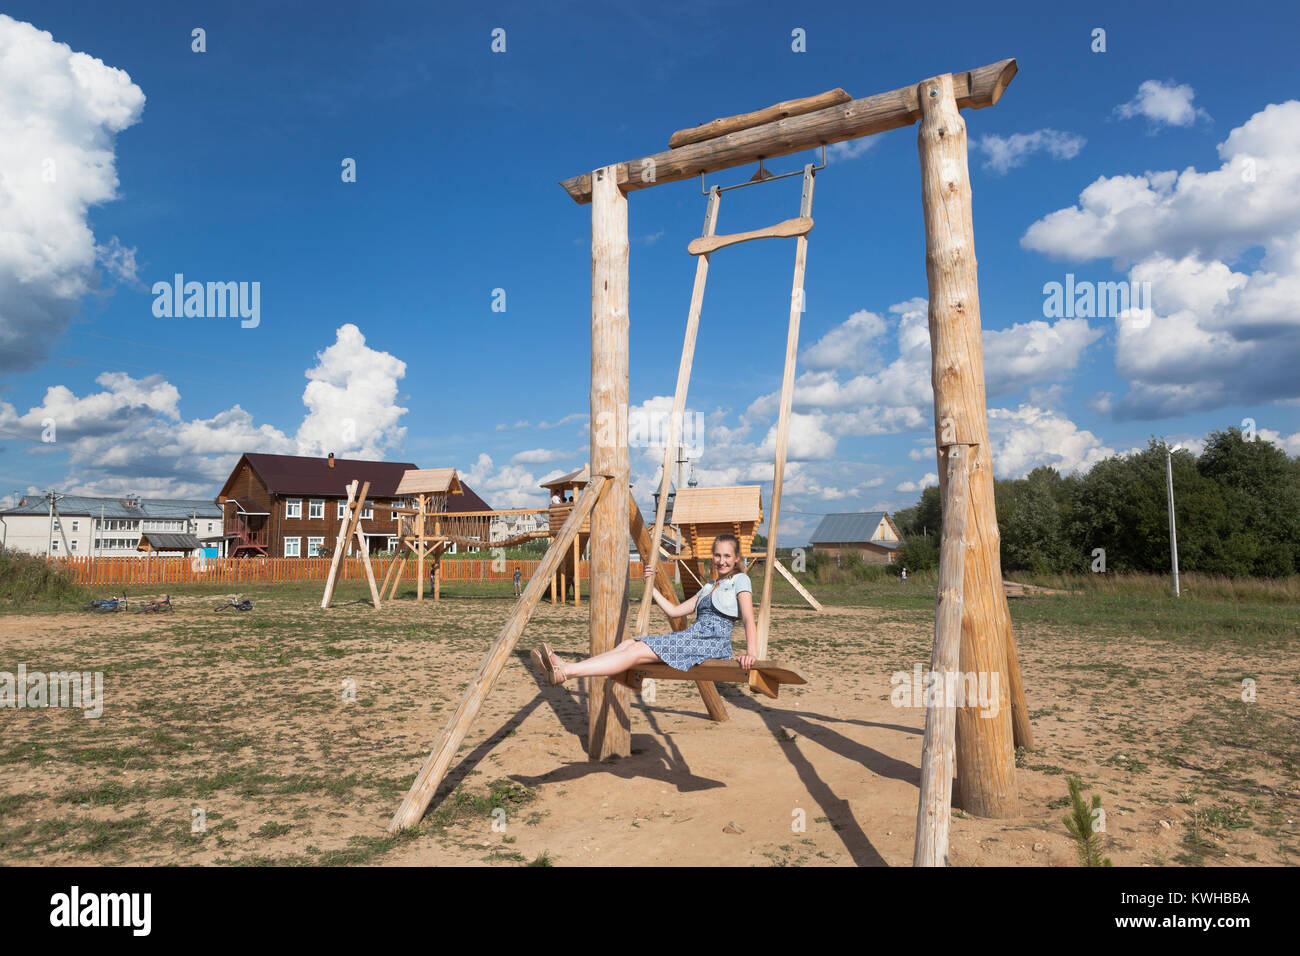 Girl swinging on a huge wooden swings at the park - Stock Image